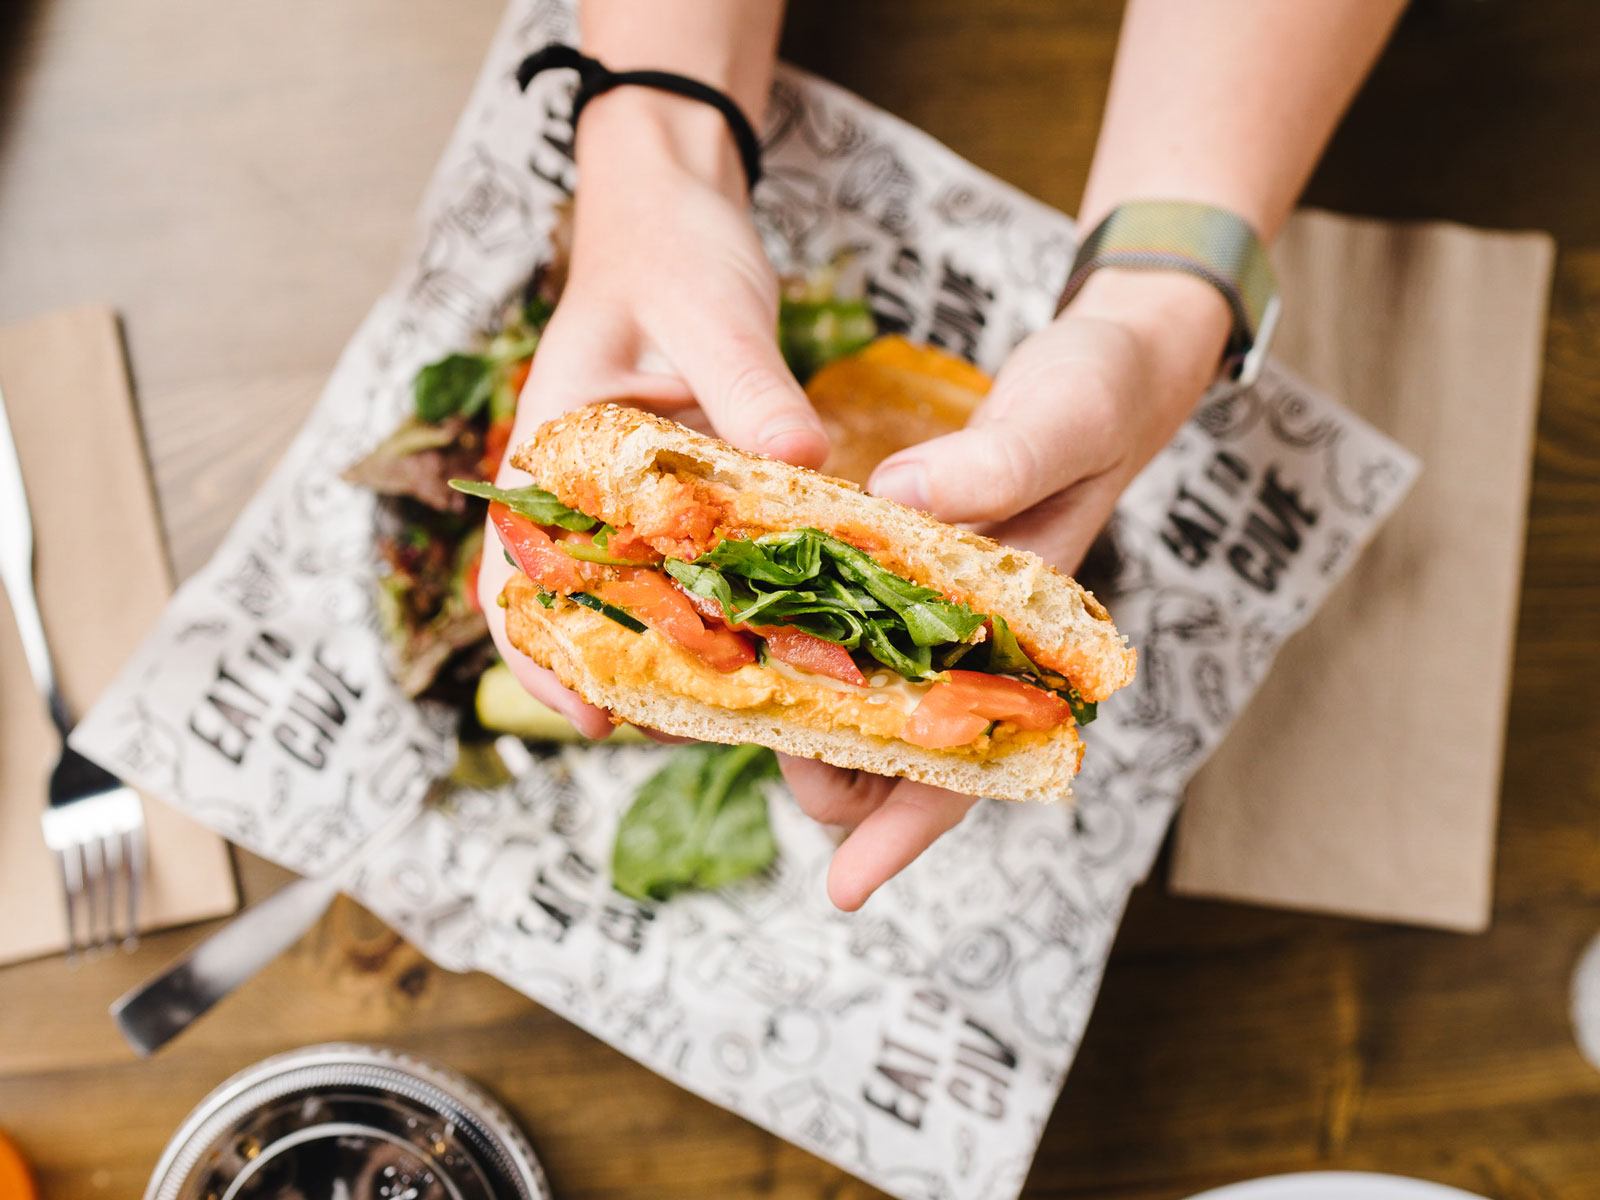 This Utah Restaurant Chain Has Given Away Nearly Three Million Sandwiches to Combat Food Insecurity